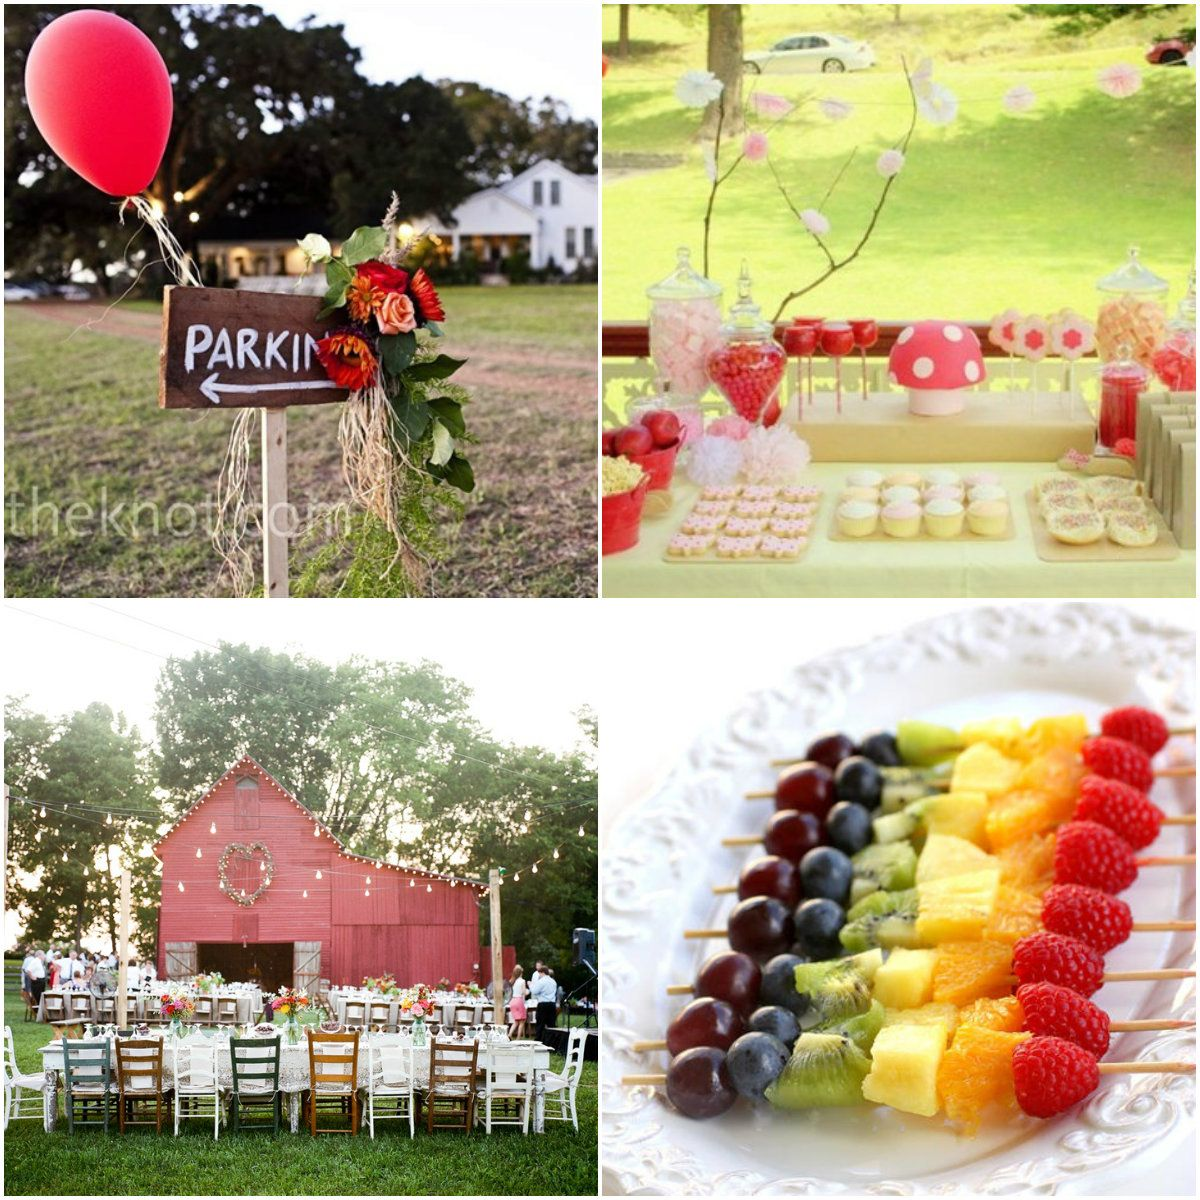 18th birthday garden party decorations party ideas for Backyard party decoration ideas